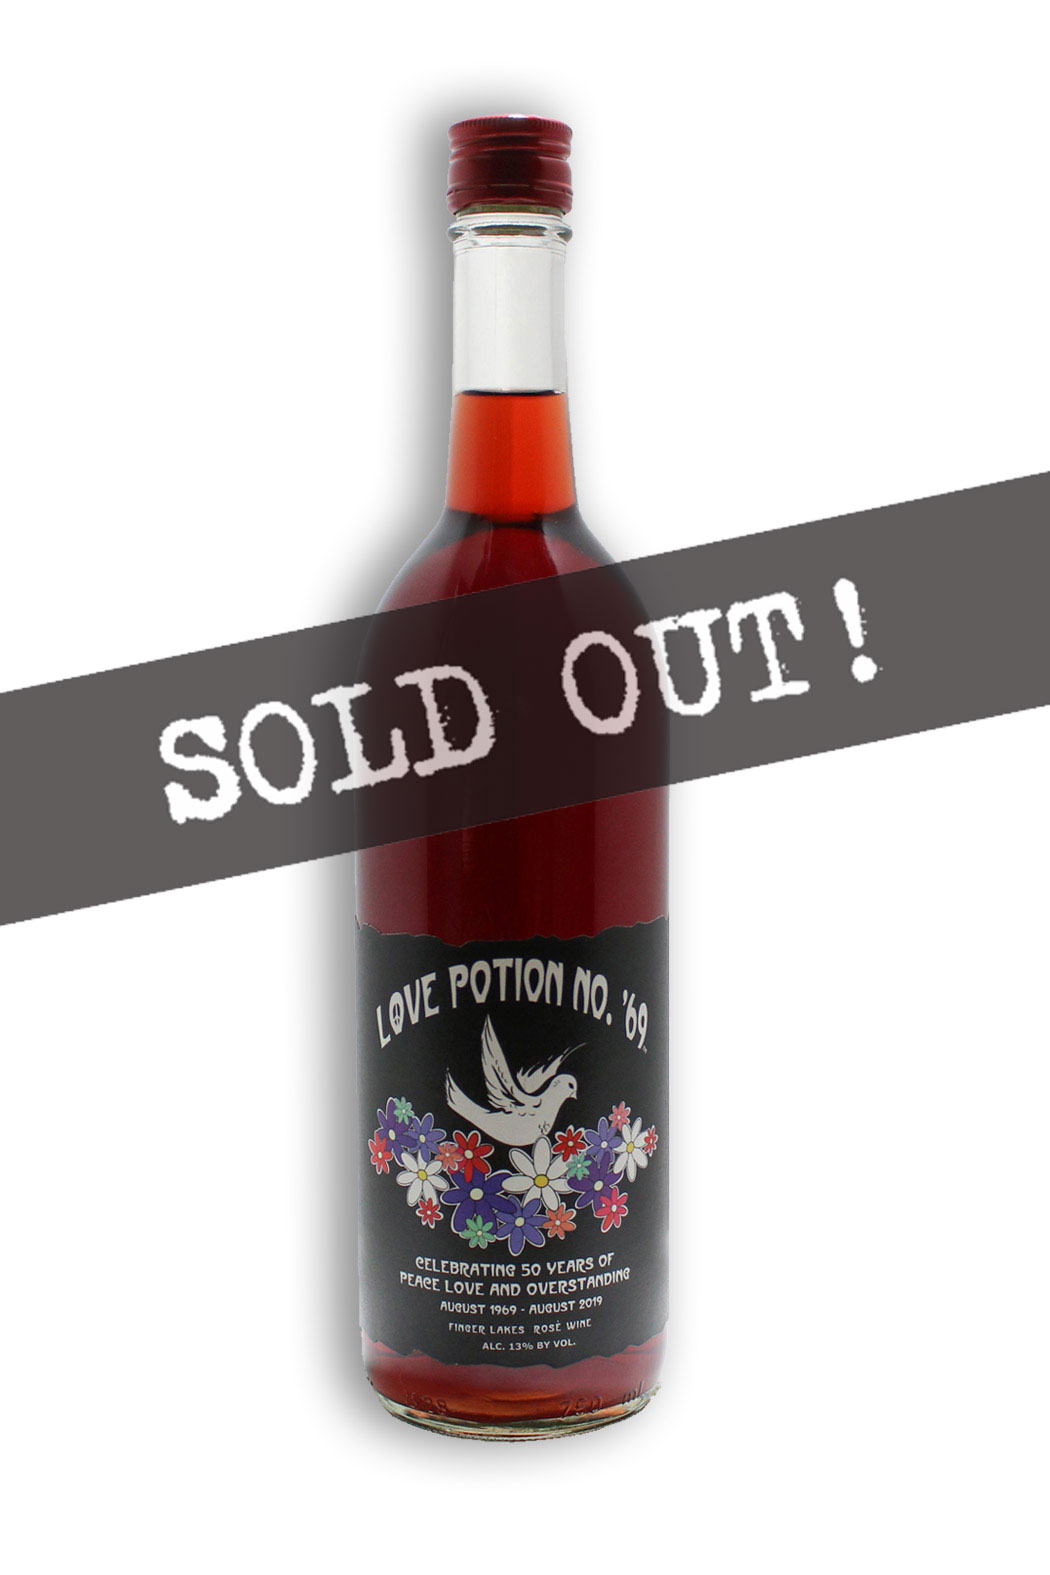 Love Potion No. '69 - Sold Out